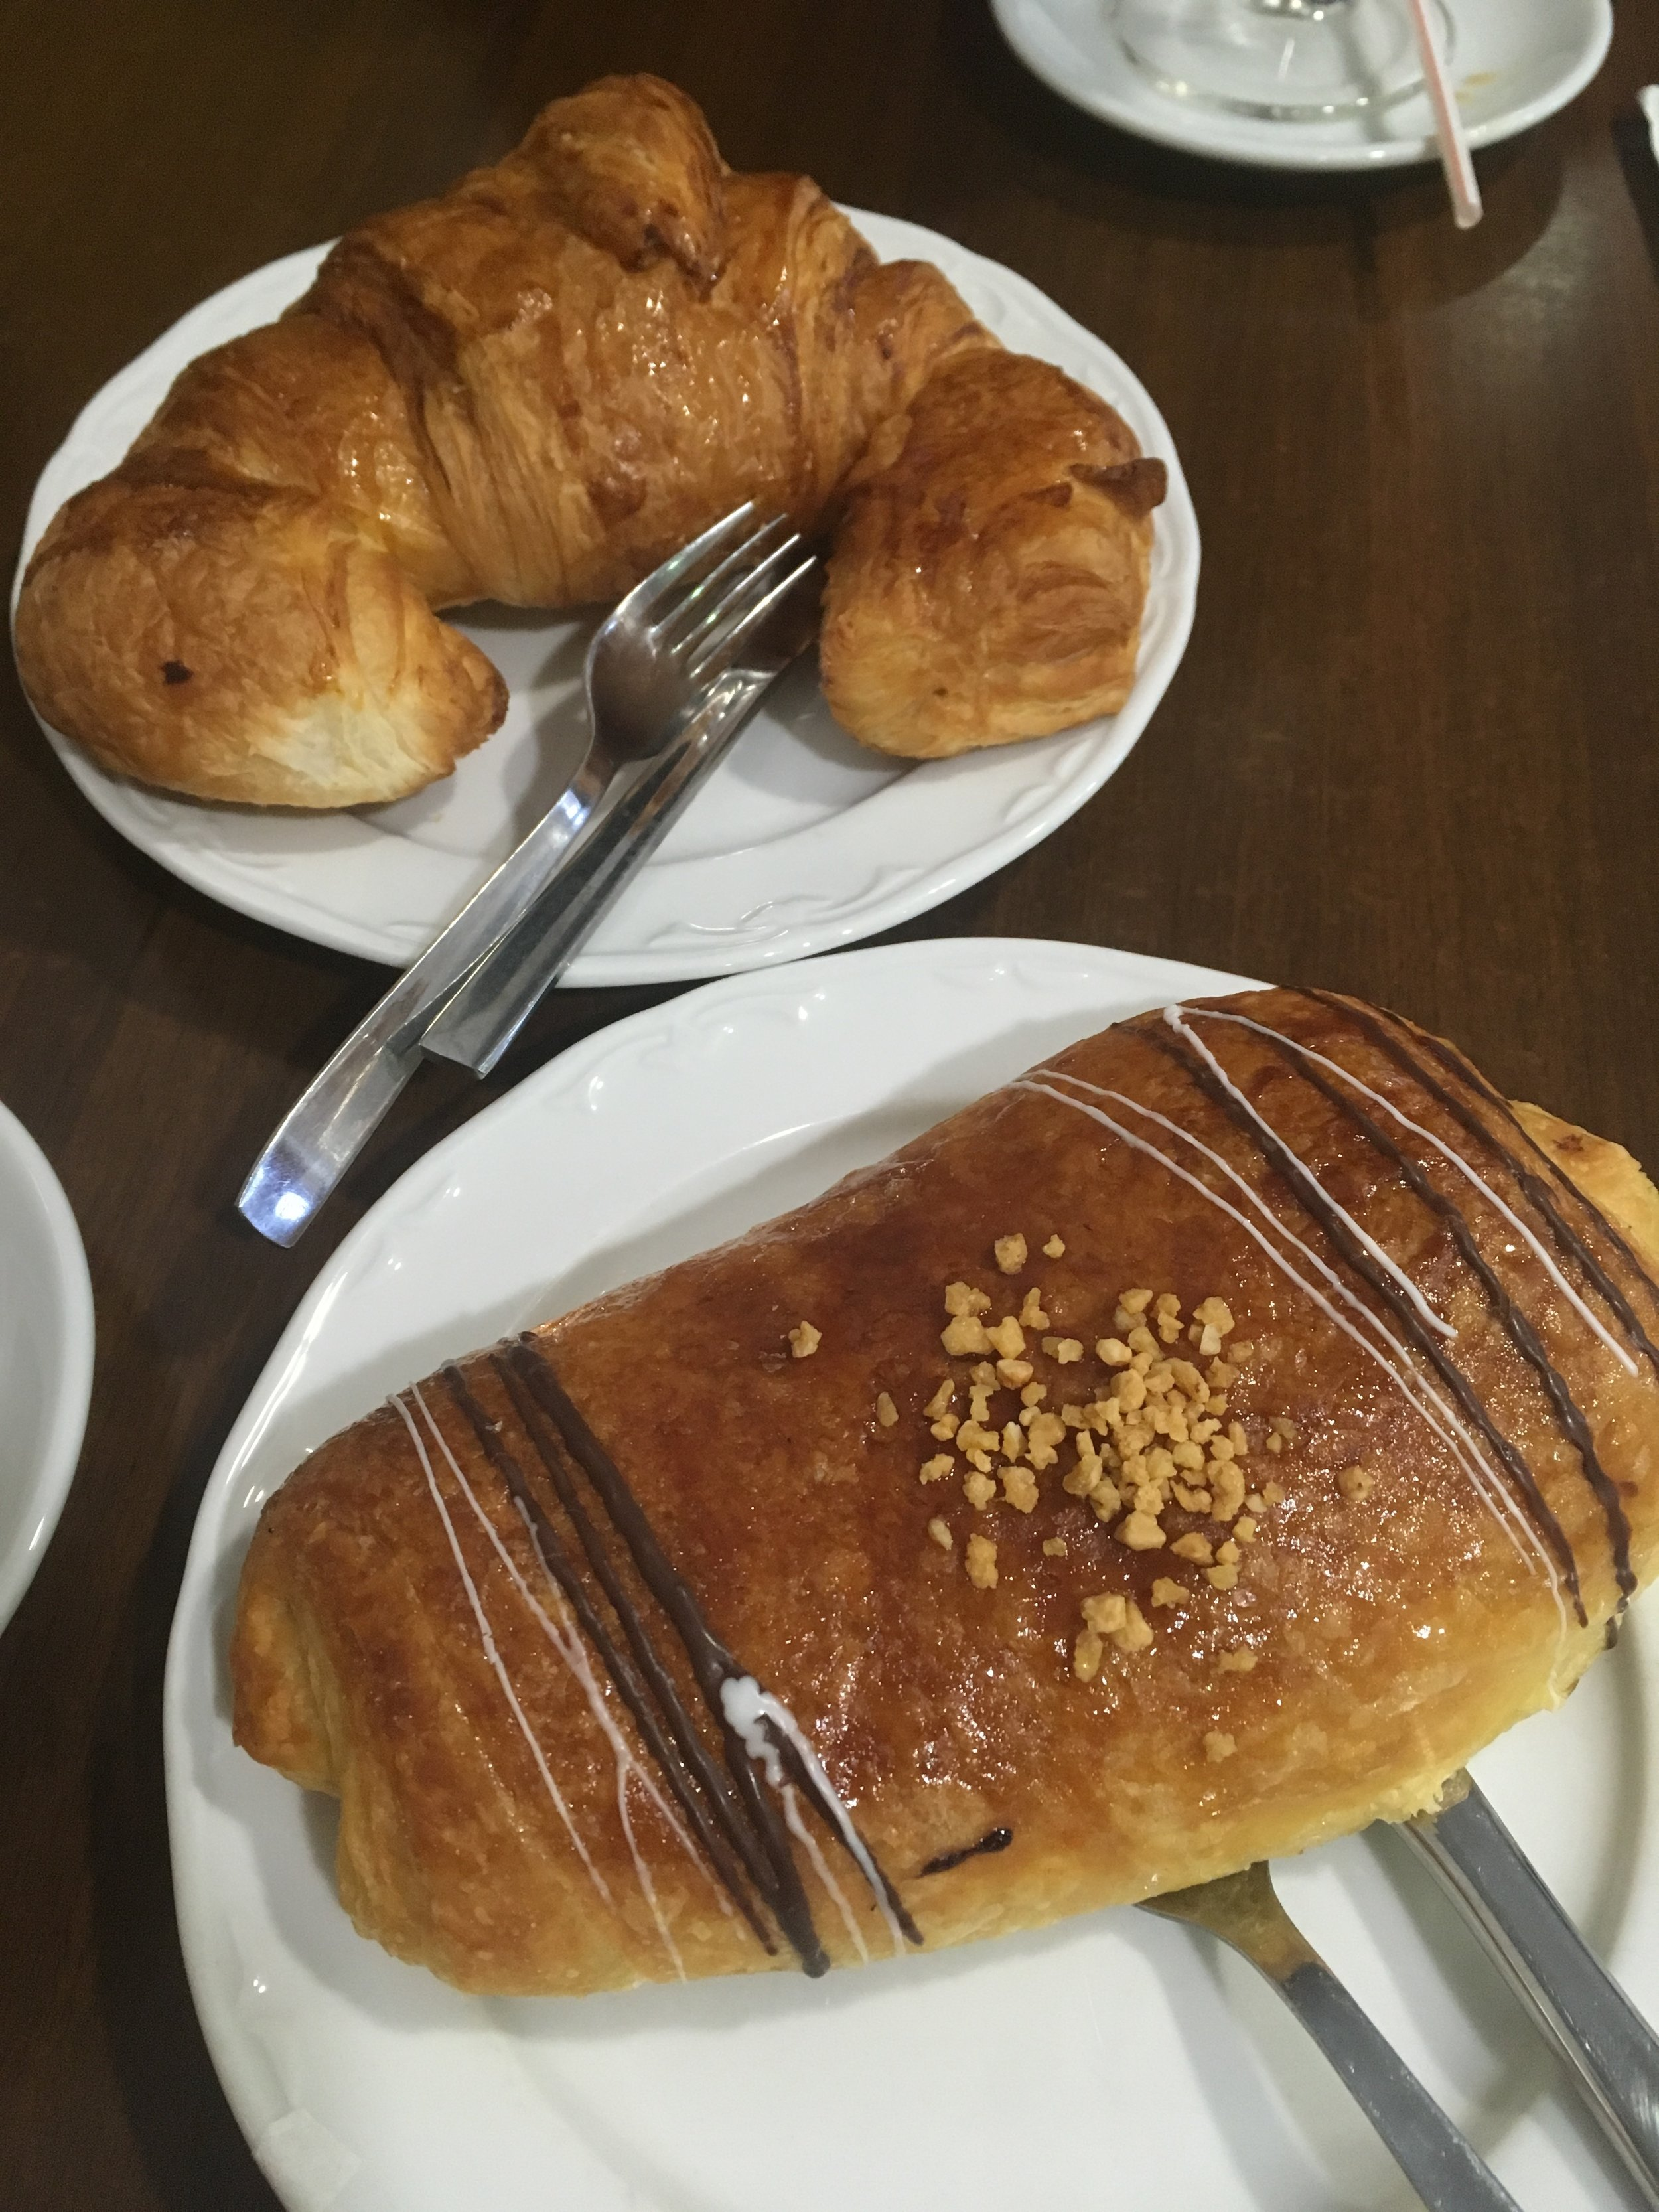 Delicious pastries for breakfast